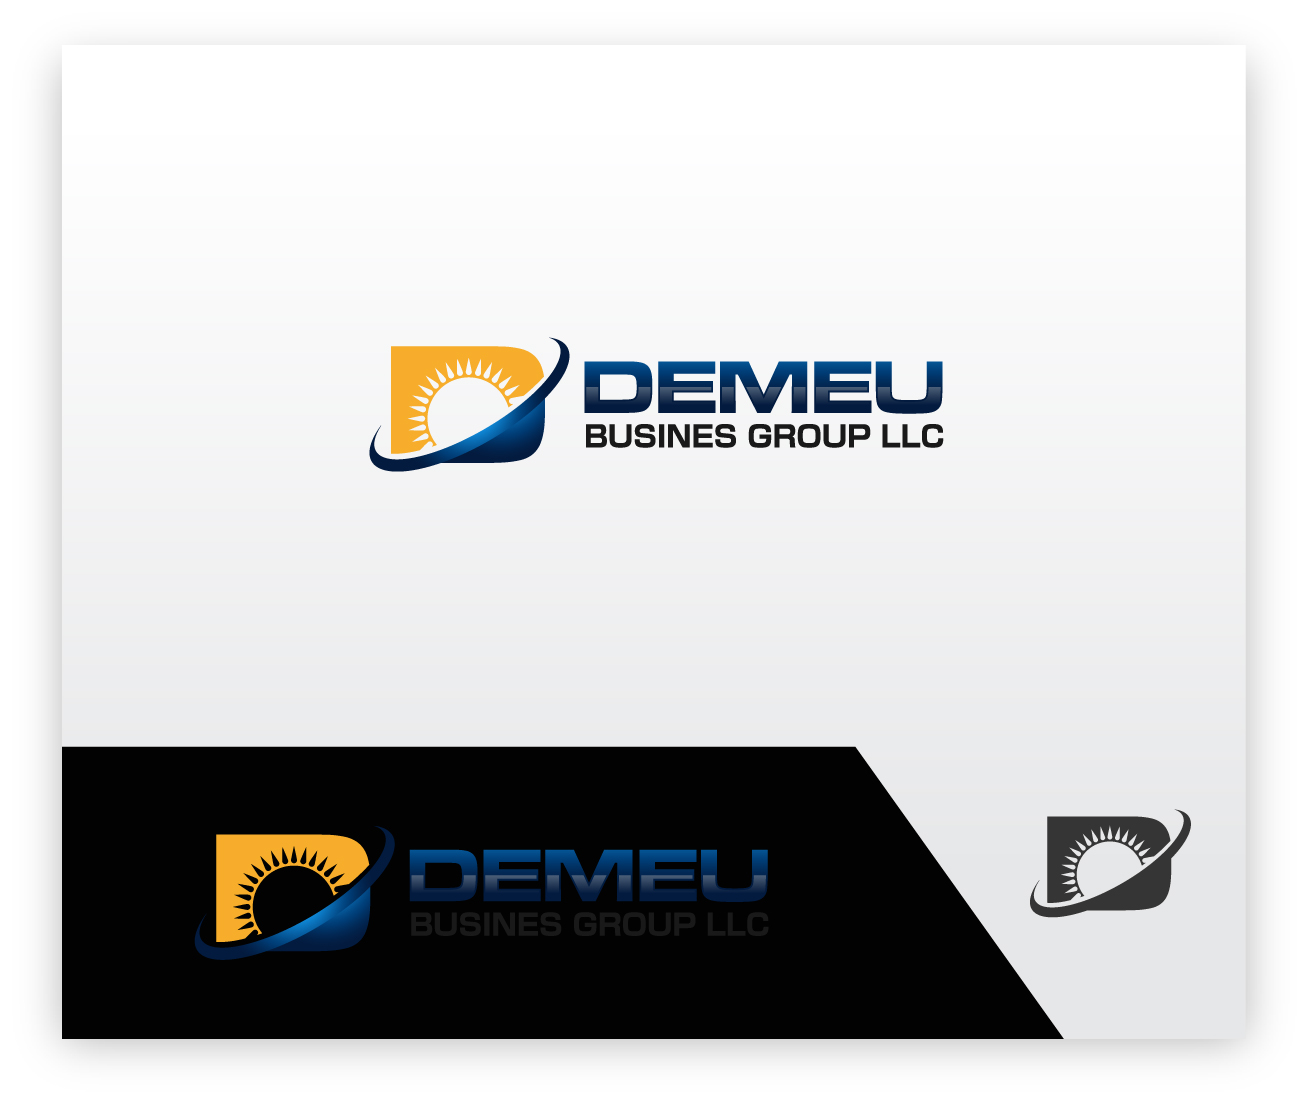 Logo Design by zoiDesign - Entry No. 115 in the Logo Design Contest Captivating Logo Design for DEMEU Business Group.